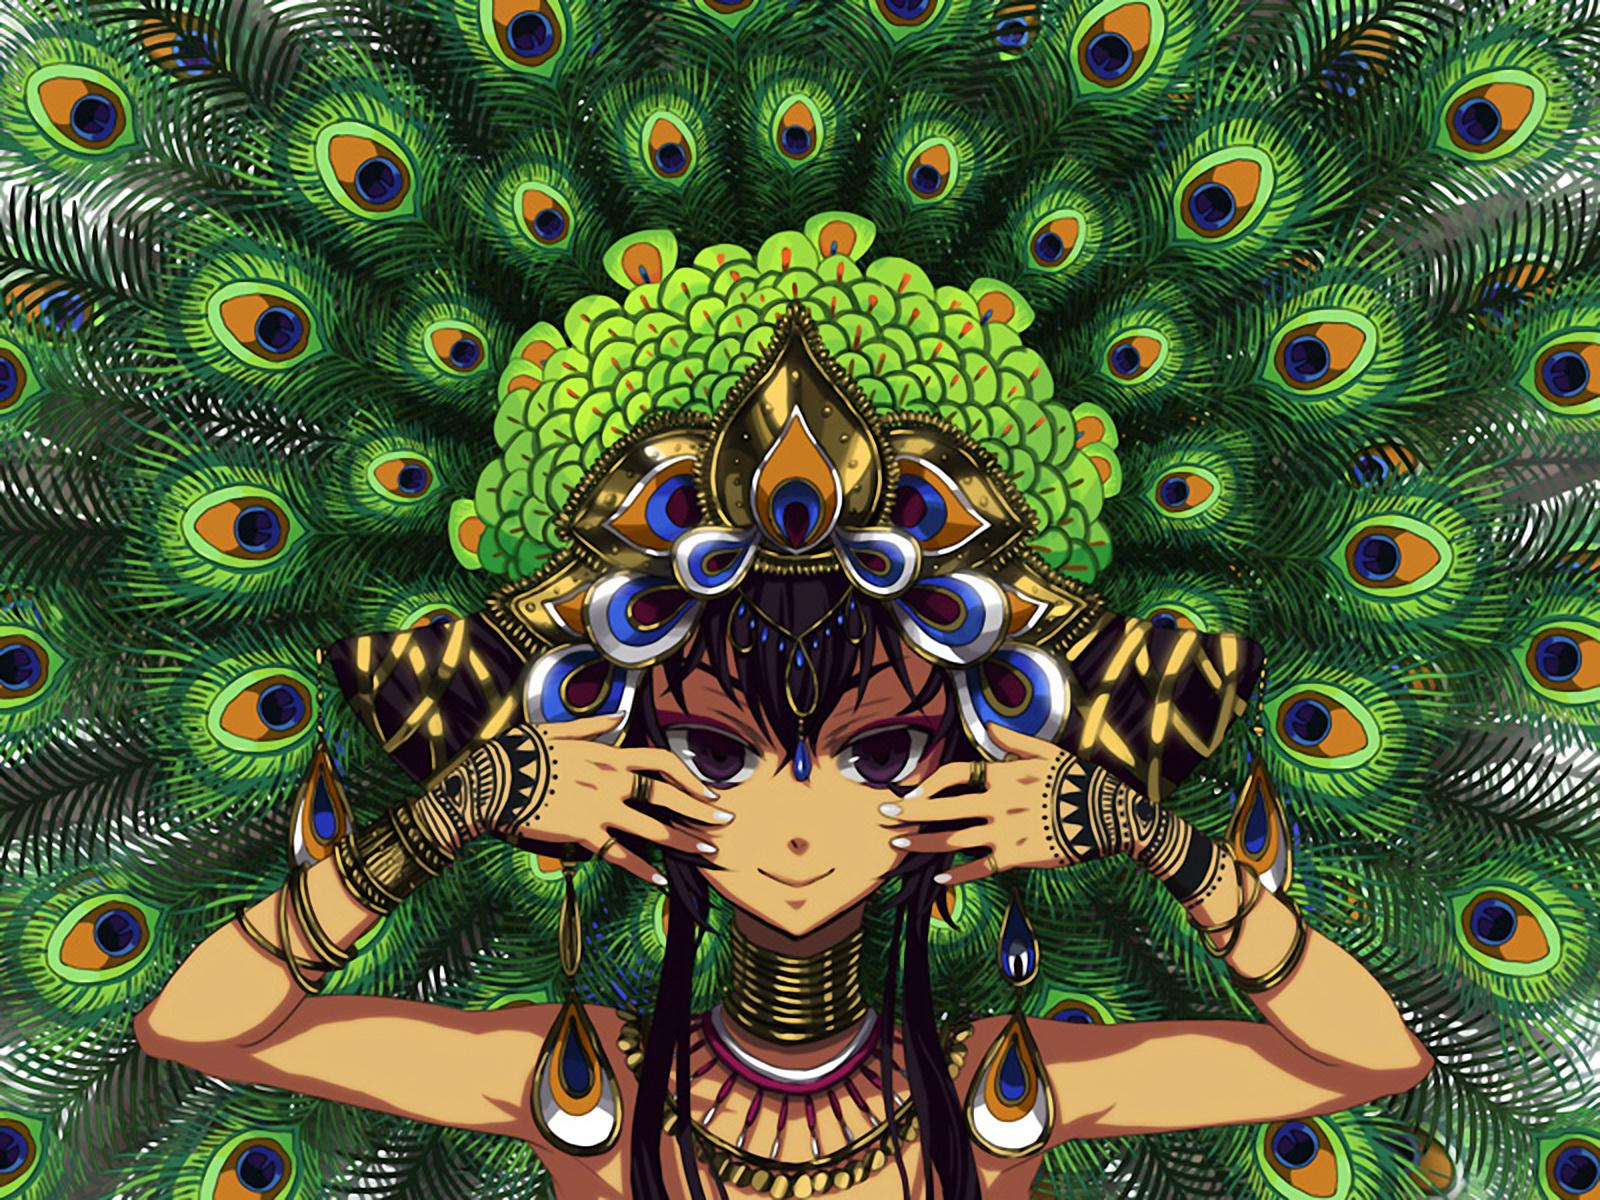 Psychedelic Girl Wallpaper 2018 Hot Selling Hd Print Oil Painting On Canvas Anime